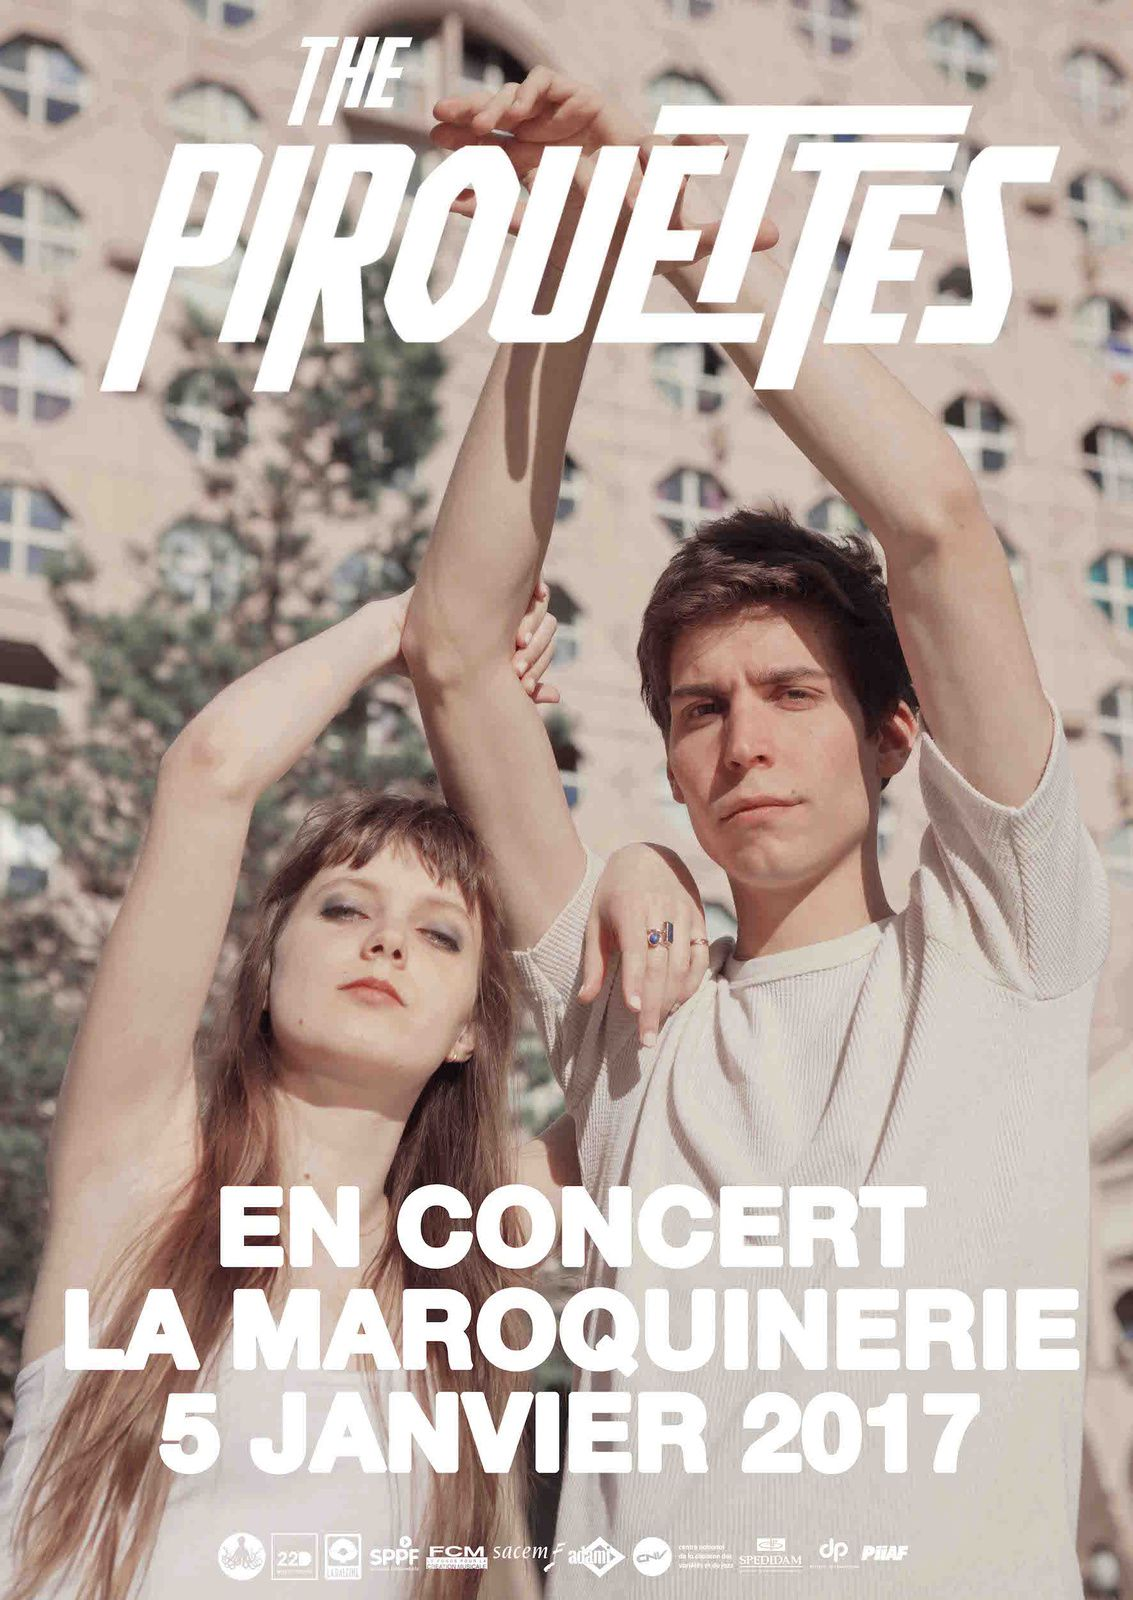 the pirouettes, maroquinerie